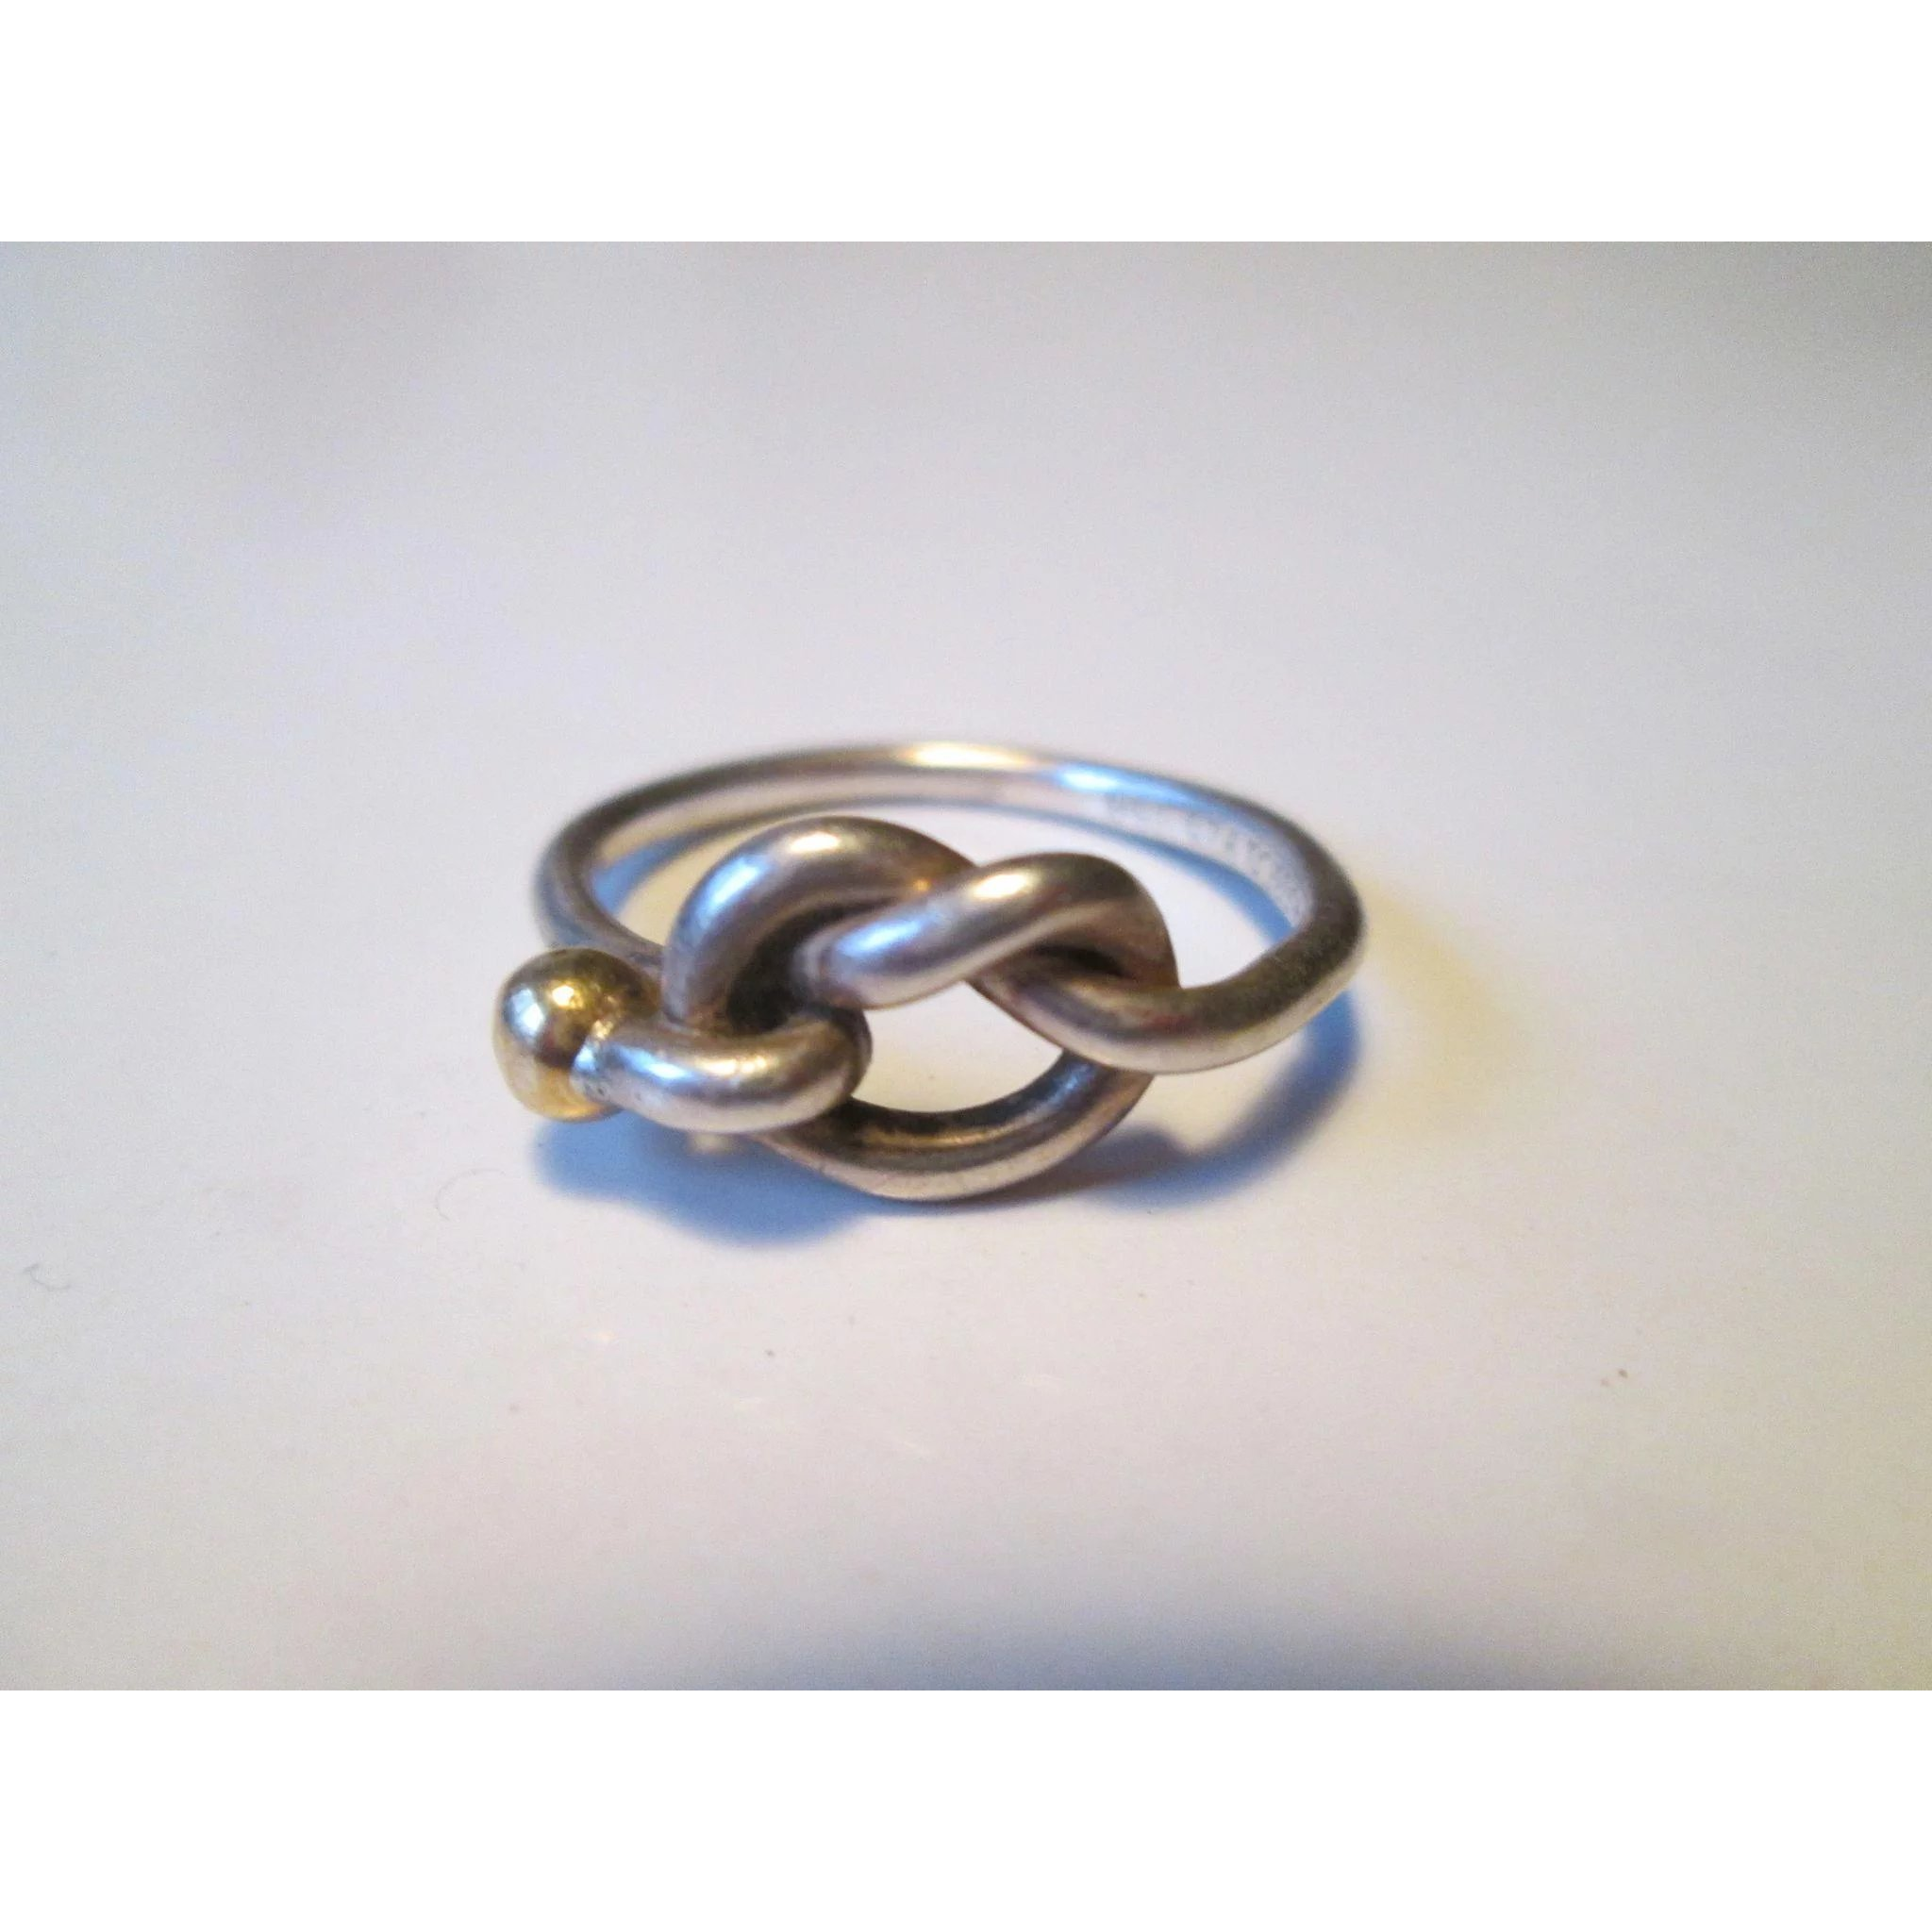 b0d7d83cafe10 Tiffany & Co. Love Knot Ring Sterling Silver & 18k Gold Size 8 - Classic!